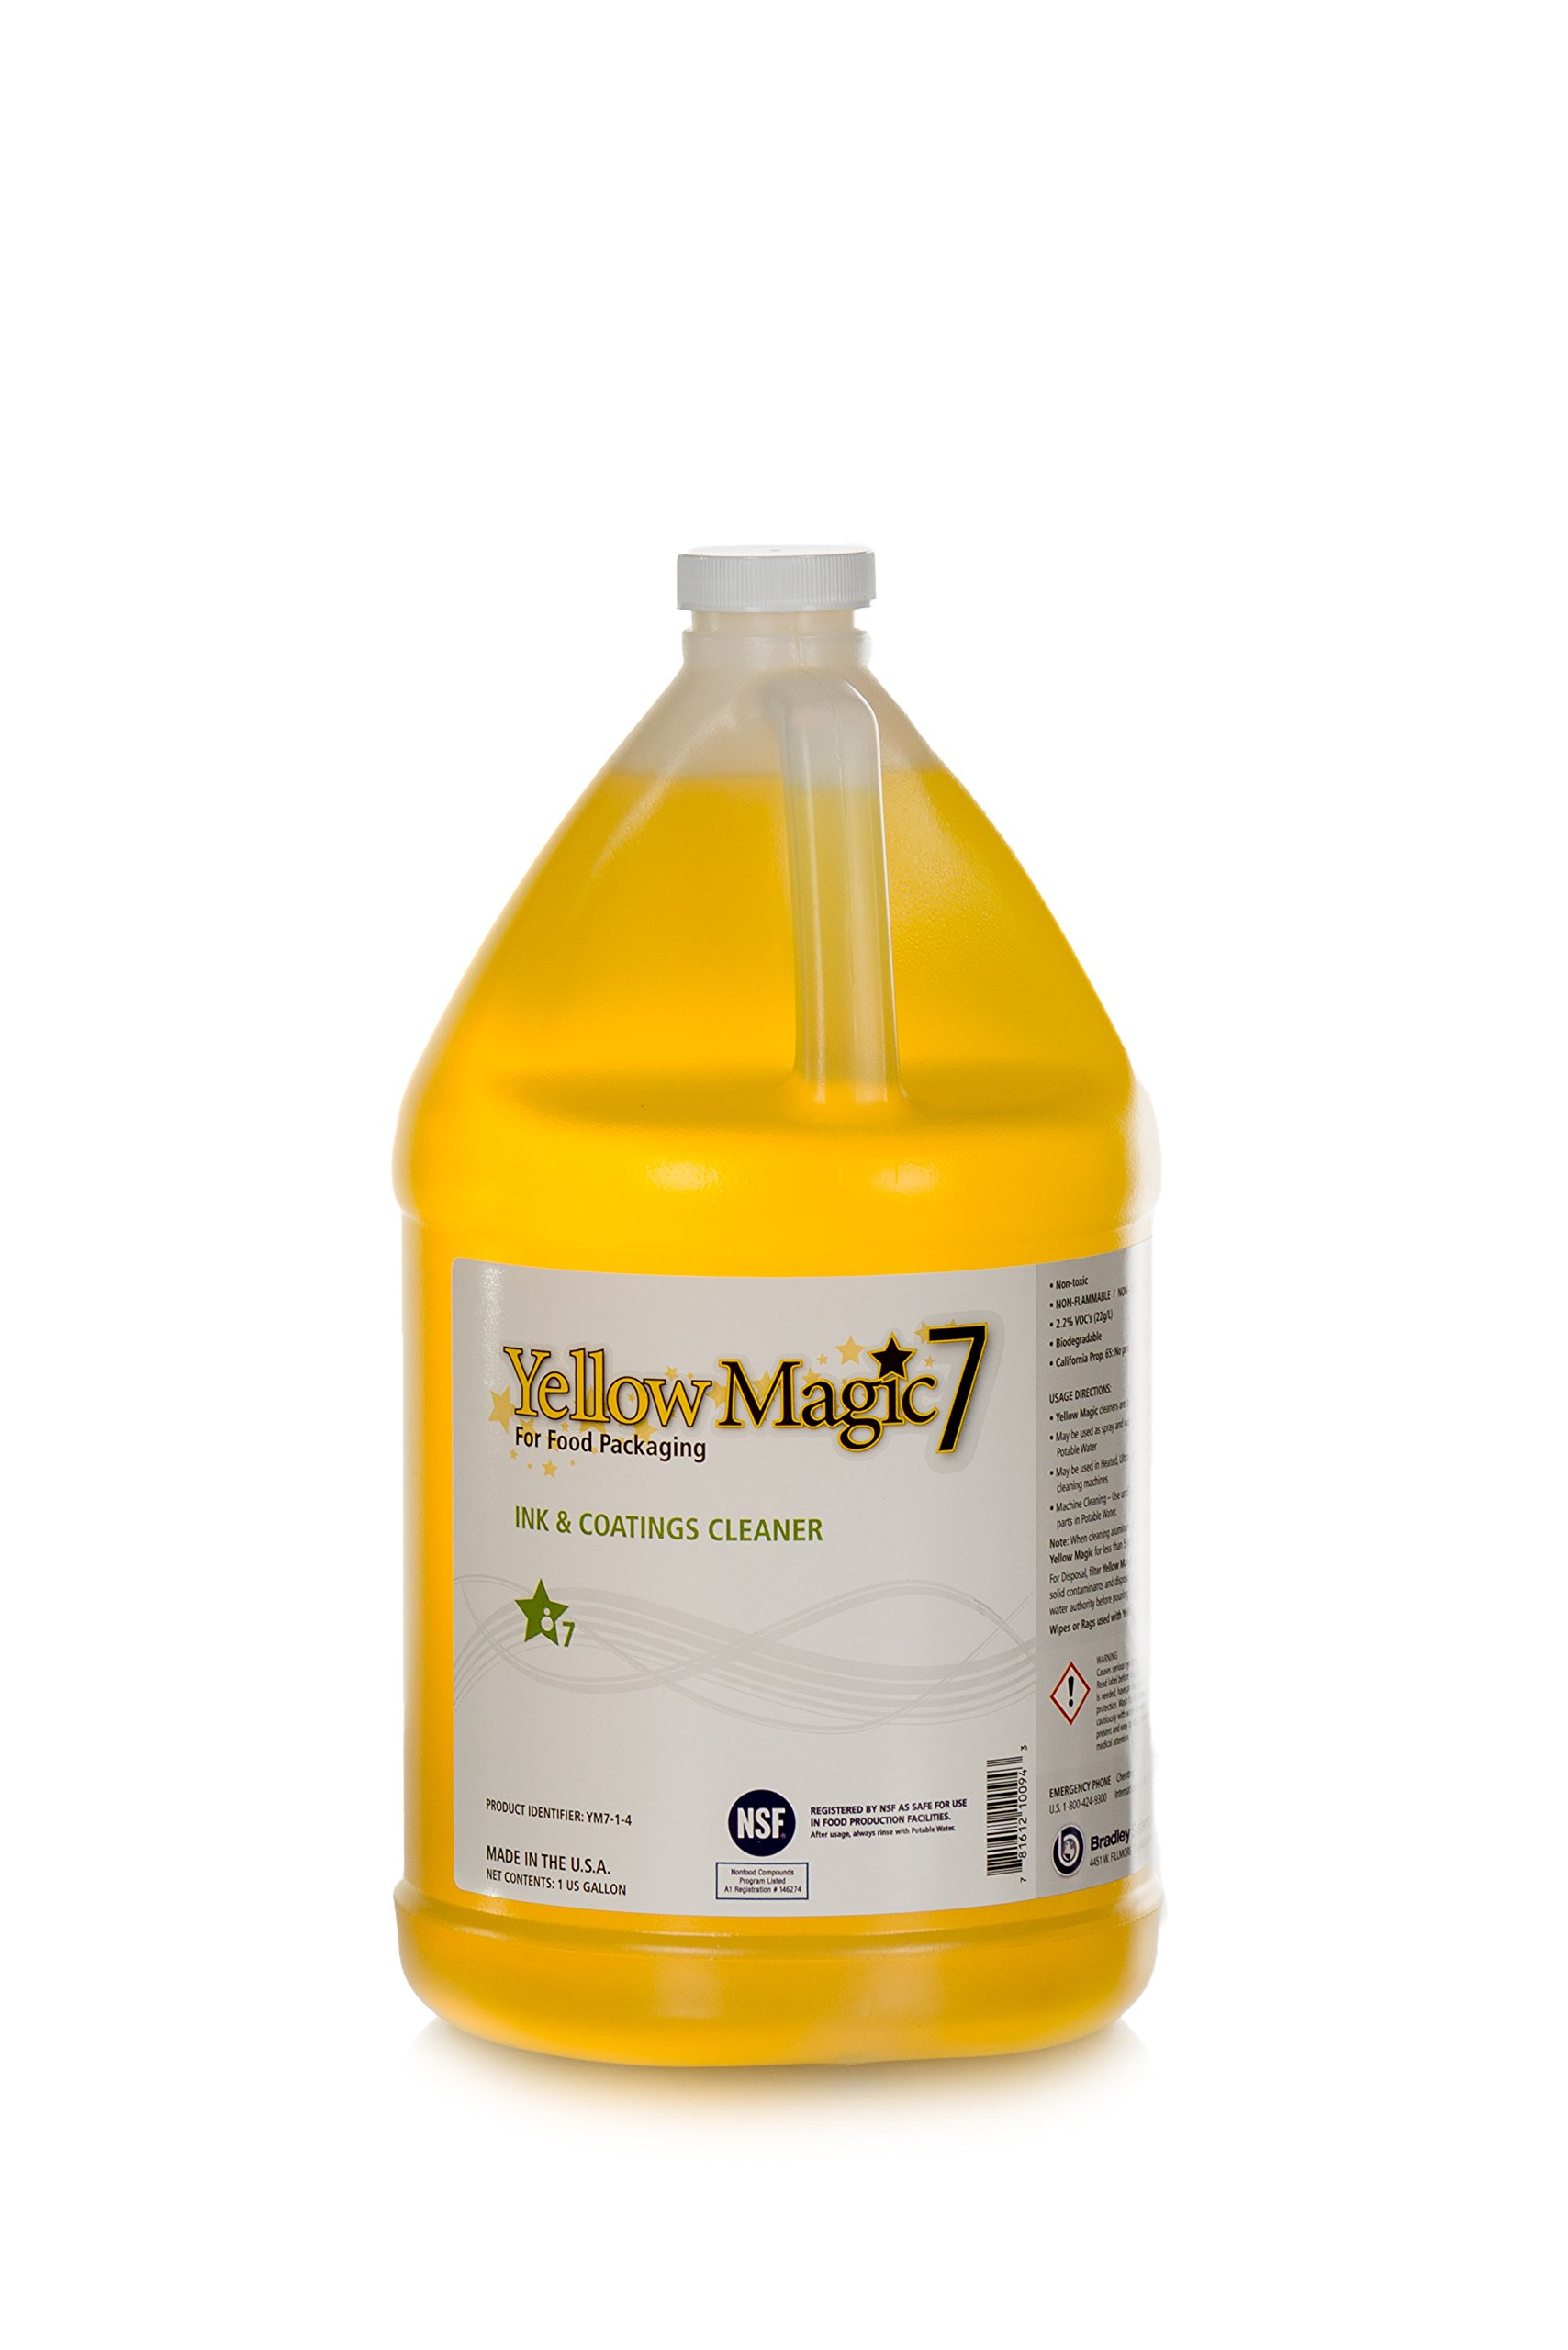 Yellow Magic 7: One Gallon, Full Strength, Undiluted Jug of Human and Pet-safe Flexo UV Ink and Varnish Cleaner for Food Packaging, SLA 3D Printers, Coatings & Varnishes, Rubber, Plastic, Steel